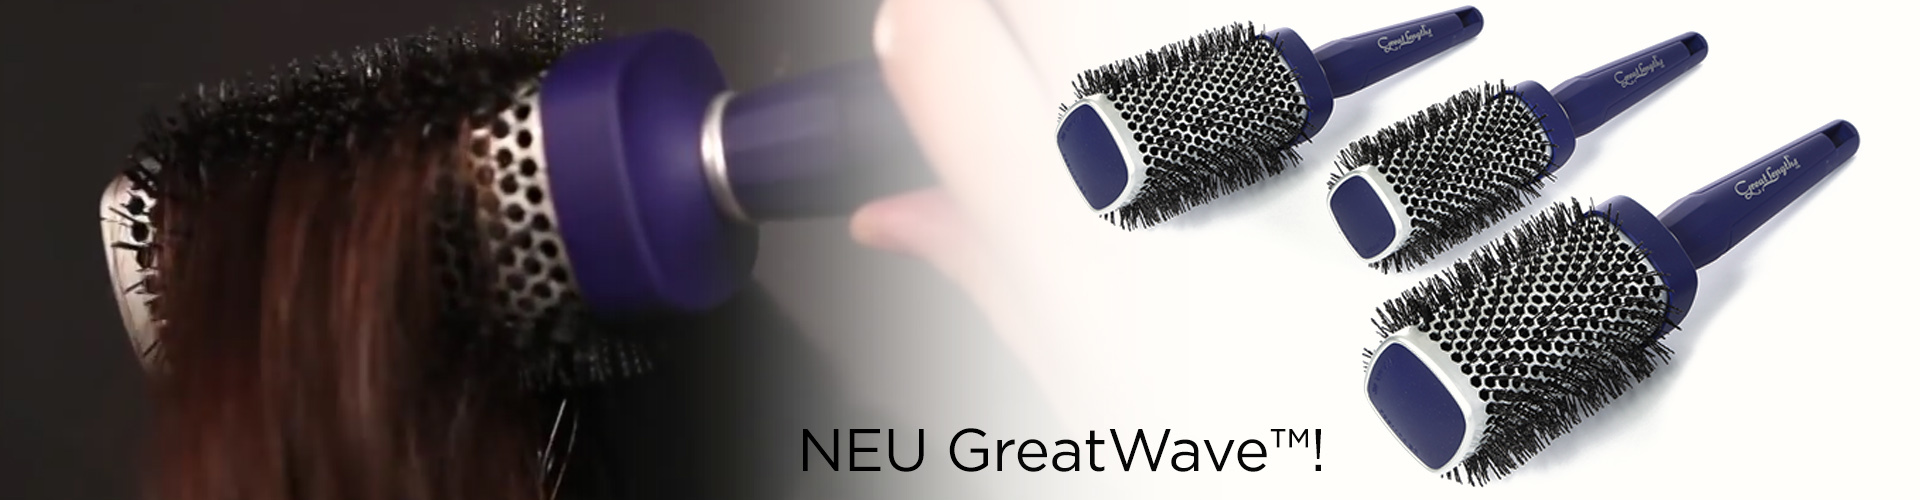 GreatWave™! Die neuen Bürsten direkt aus den USA (© Great Lengths)